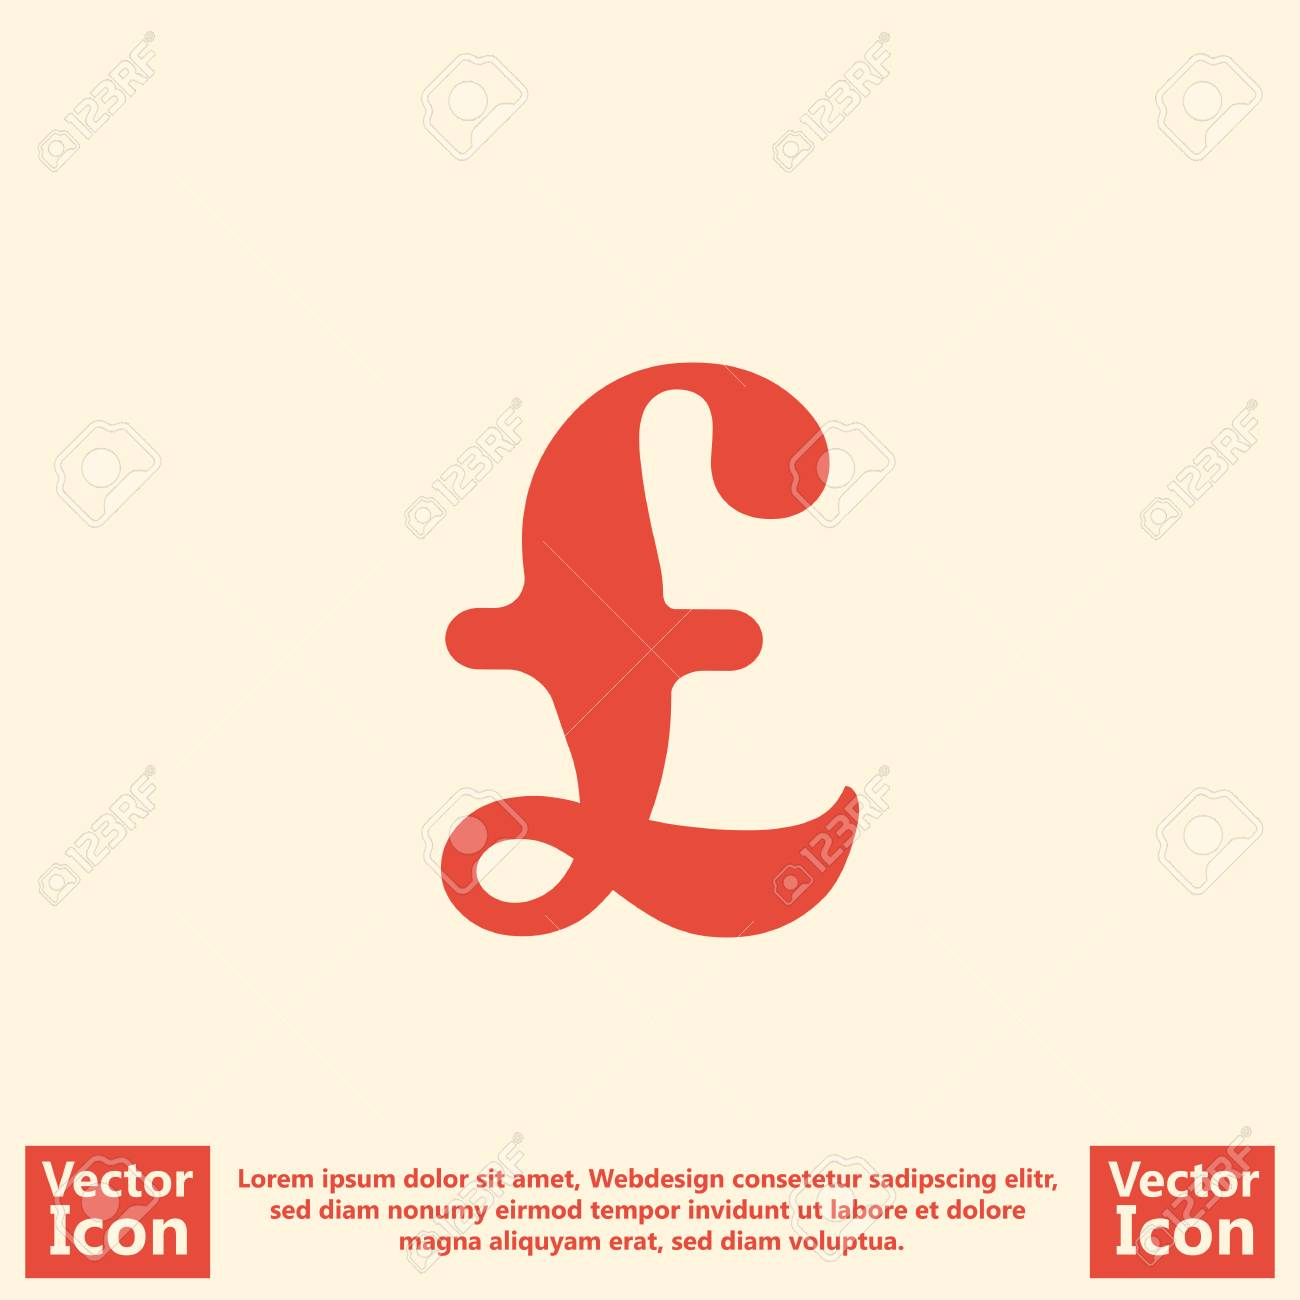 Flat Style Icon With British Pound Symbol Royalty Free Cliparts